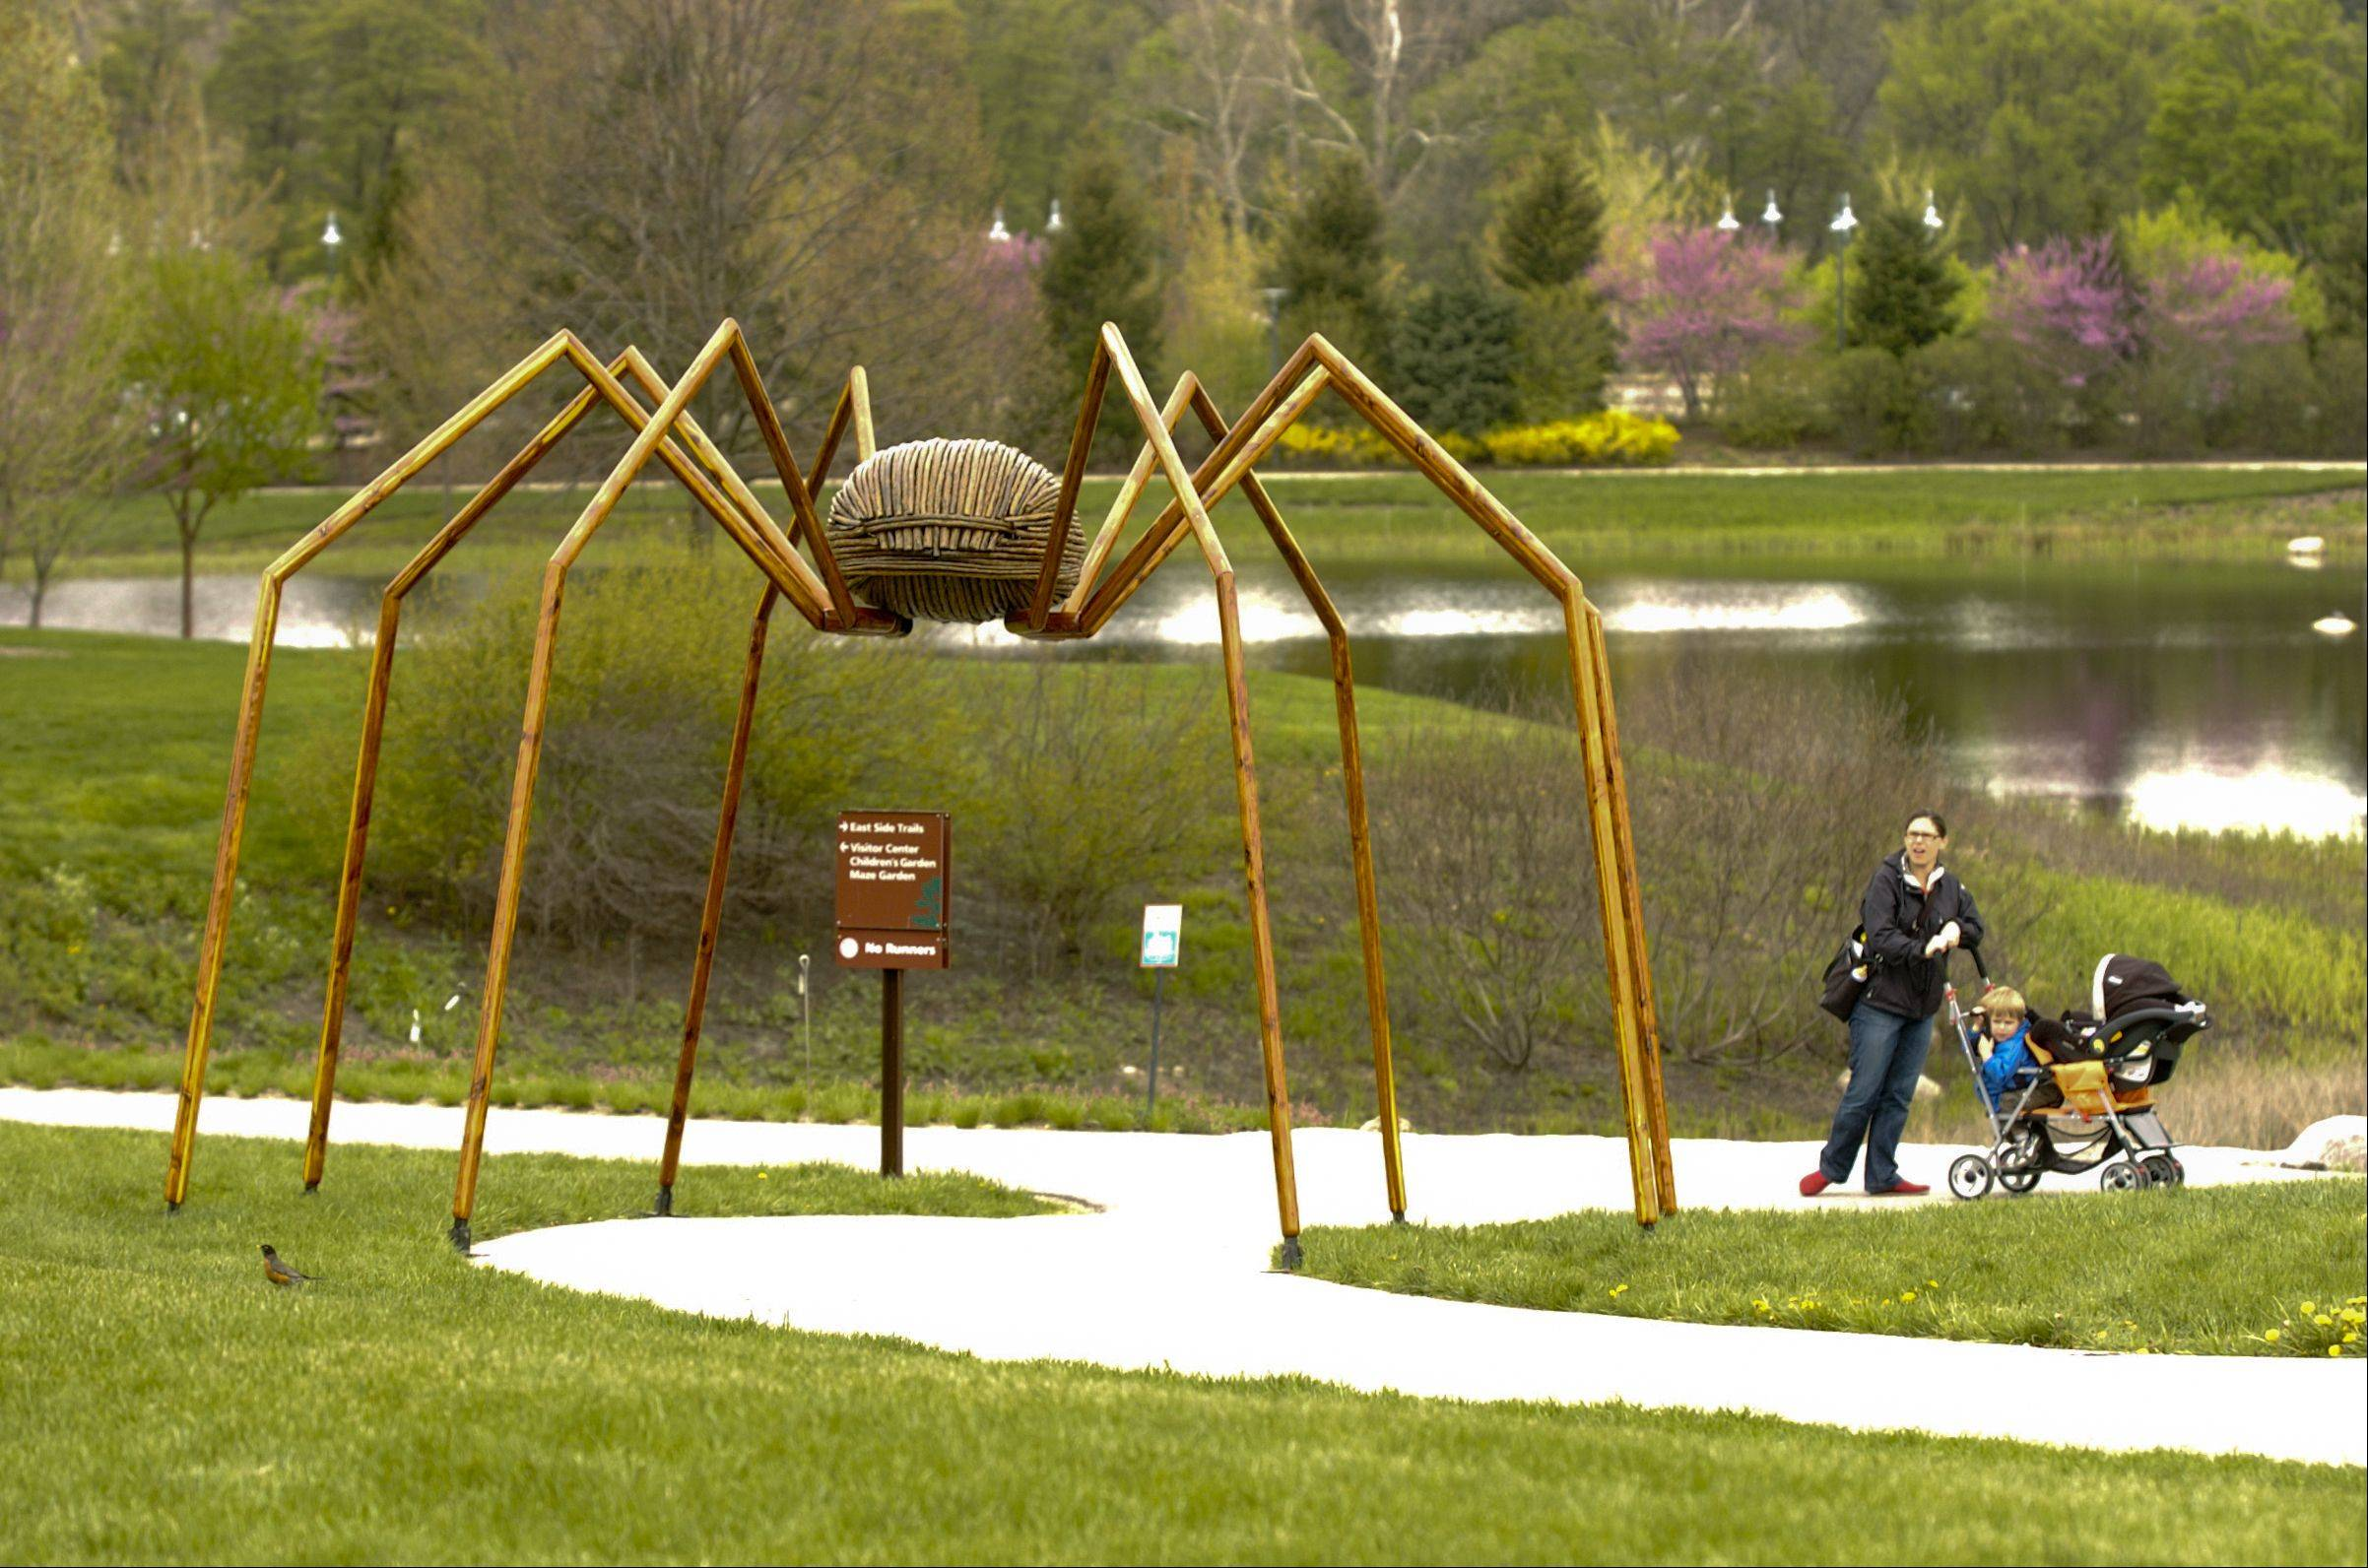 Visitors to the Morton Arboretum check out the huge daddy long leg spider that is part of artist David Rogers' Big Bugs exhibition in Lisle.